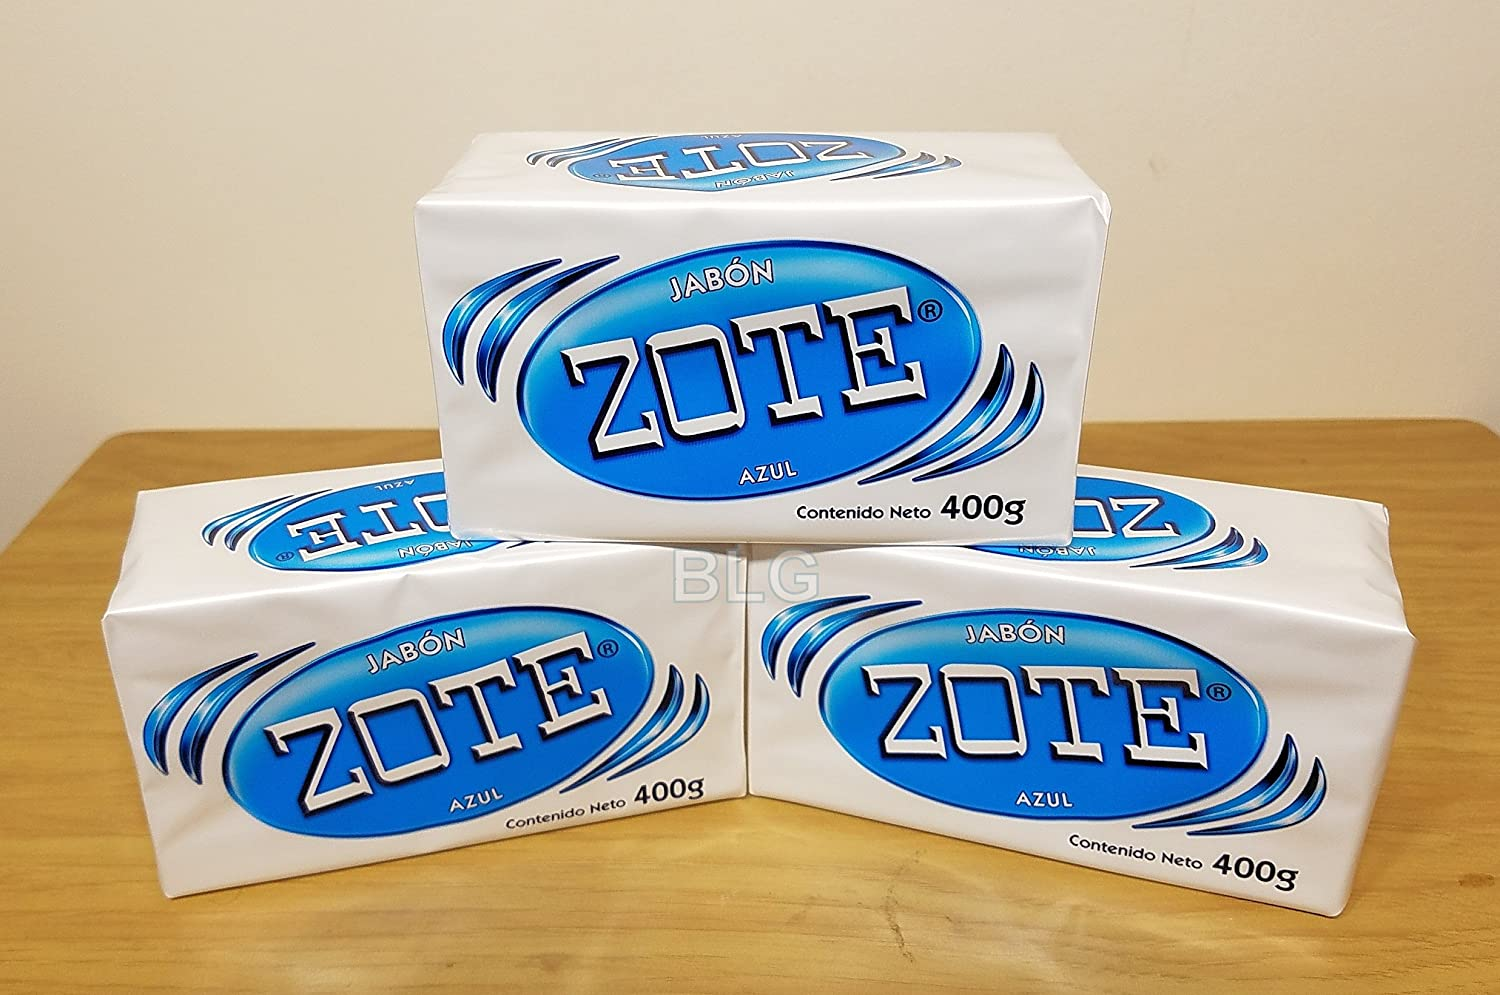 Zote Laundry Soap Bar Pink. Jabon Azul (3 Pack) cleaner washing kitchen home detergent bath 080585090197 house products.